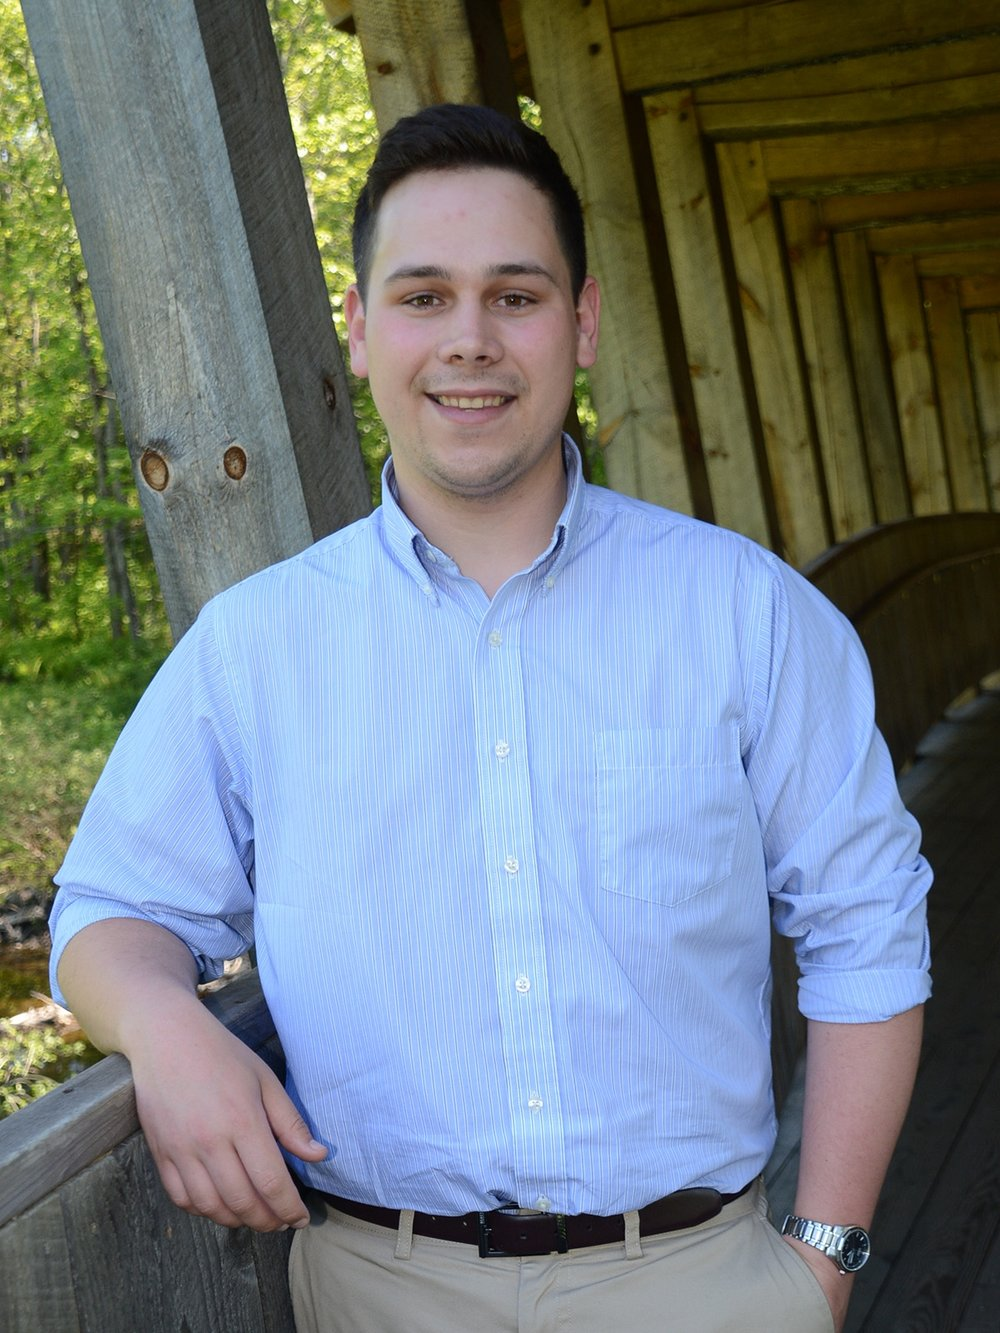 Ben Chaine - Real Estate & Insurance Agent - Ben is a great addition to our local team, born and raised in Bridgton! Acquiring his real estate license in 2017, he will use his local knowledge to help you with all of your real estate needs. He is a young ambitious realtor who feels he can connect well with the younger generation buying their first homes and connect with sellers marketing to this demographic. Ben studied business at Thomas College in Waterville, Maine and looks forward to helping you find your new home!Ben also has his insurance license and would be happy to help you with your insurance needs!